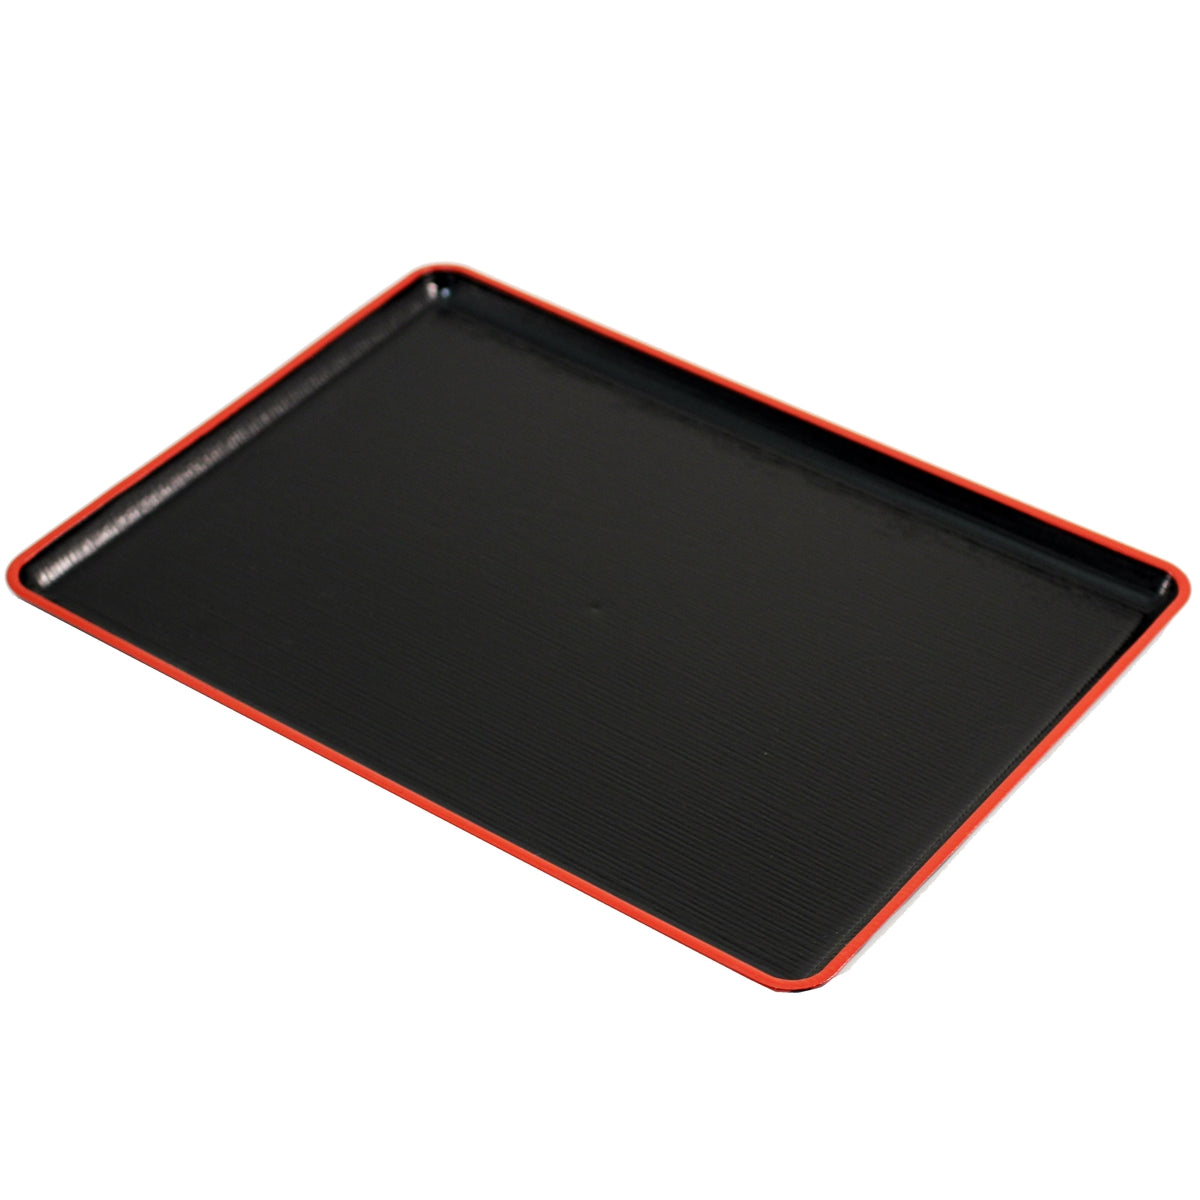 "Black Rectangular Serving Tray with Red Trim 15.35"" x 11.18"""